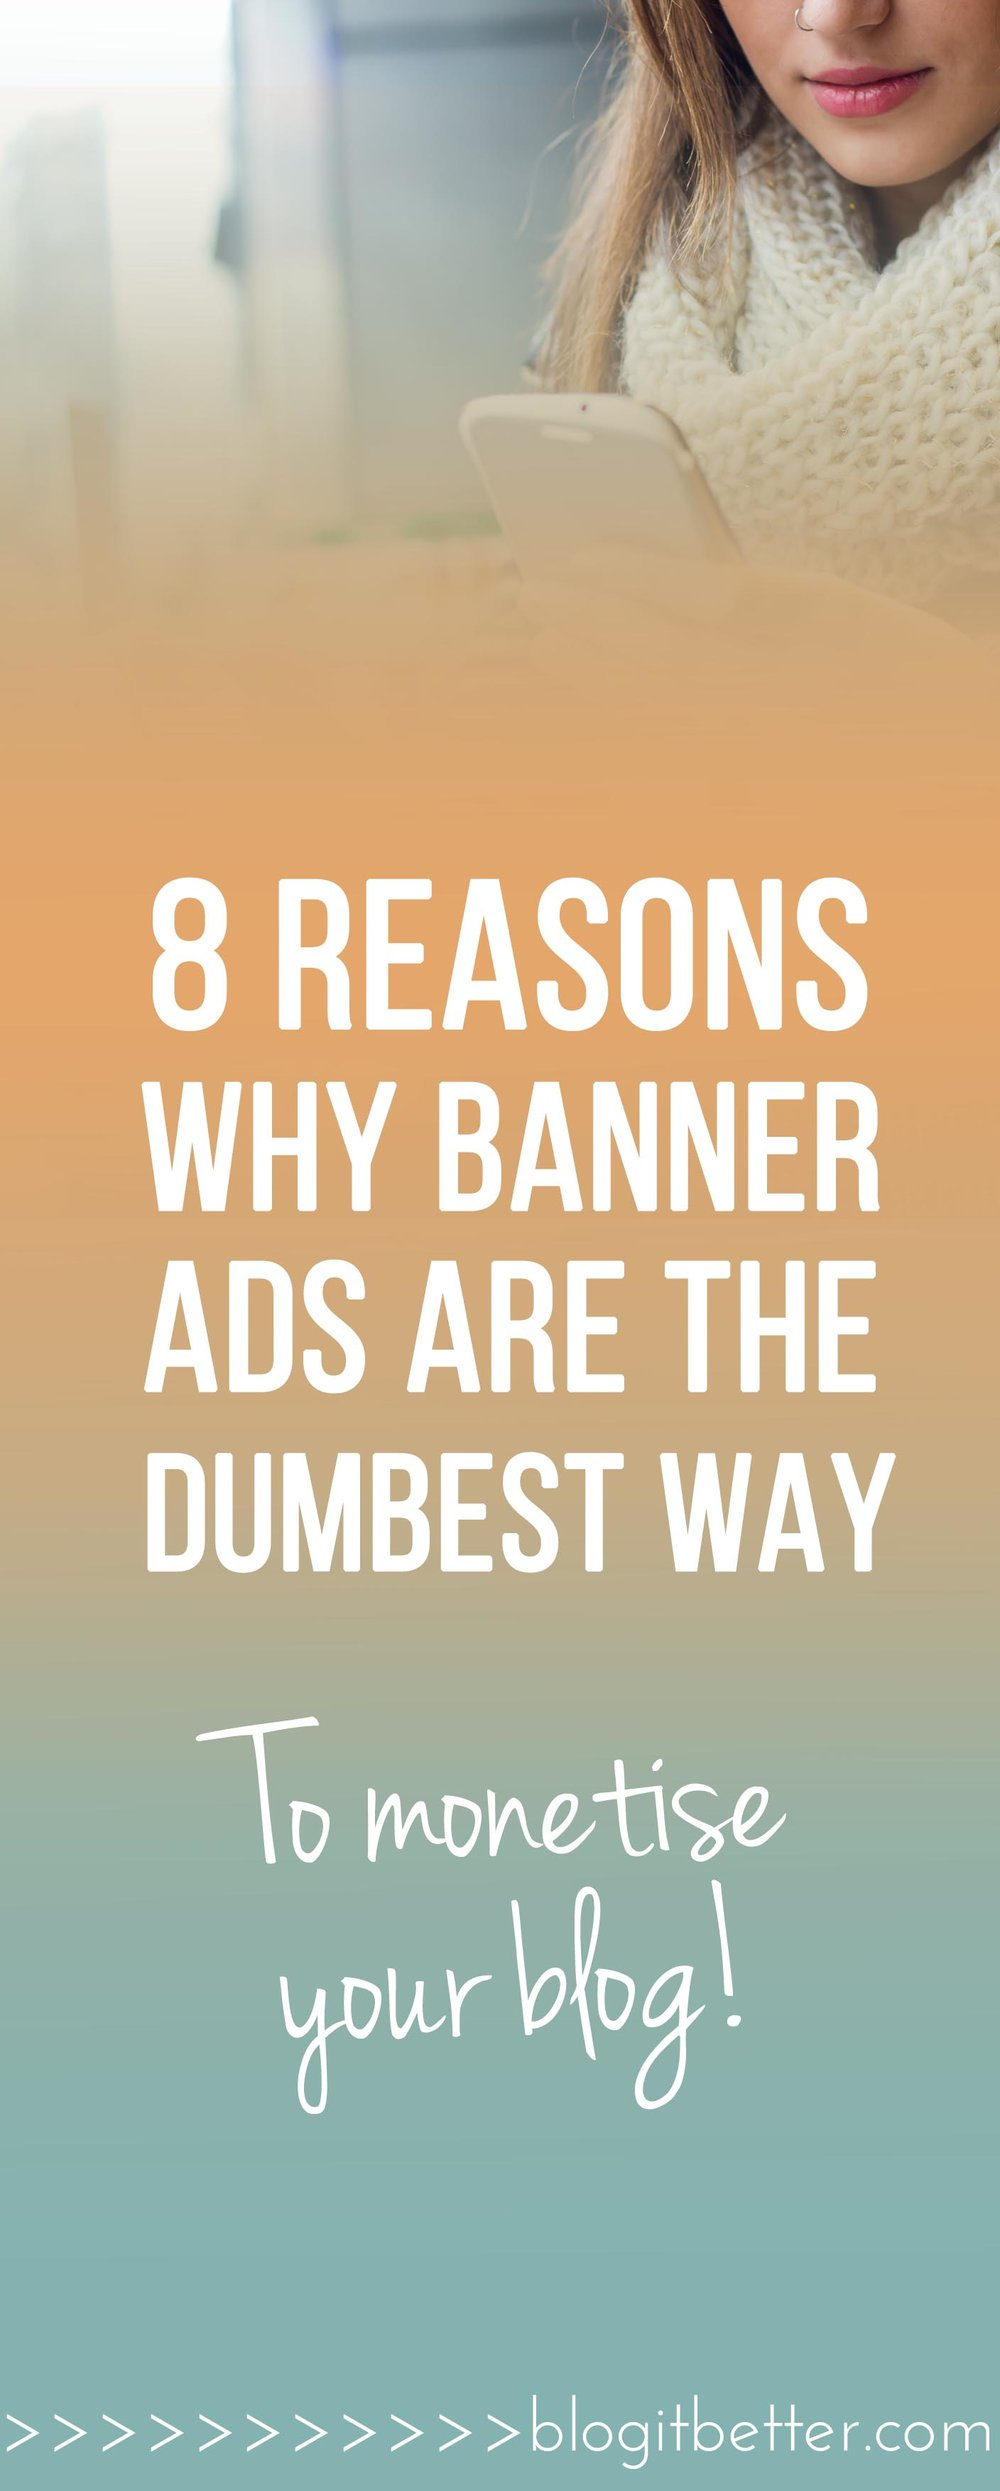 8 Reasons Why Banner Ads Suck for Monetising Your Blog! Blog it Better!